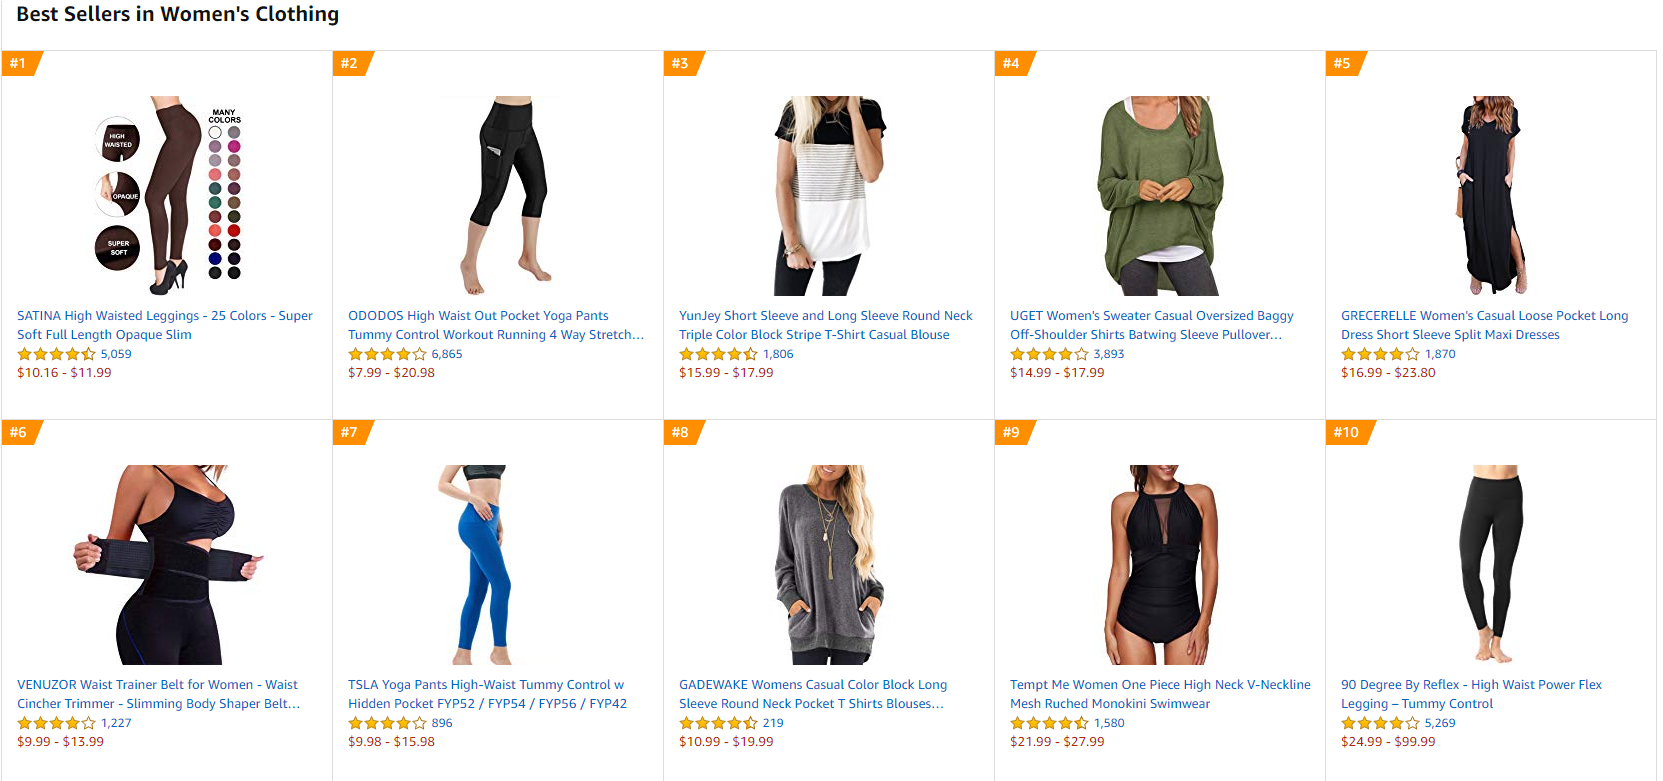 opening a clothing store online - When looking for a niche, you can visit Amazon's Quirky & Unique section to see anything that stands out.